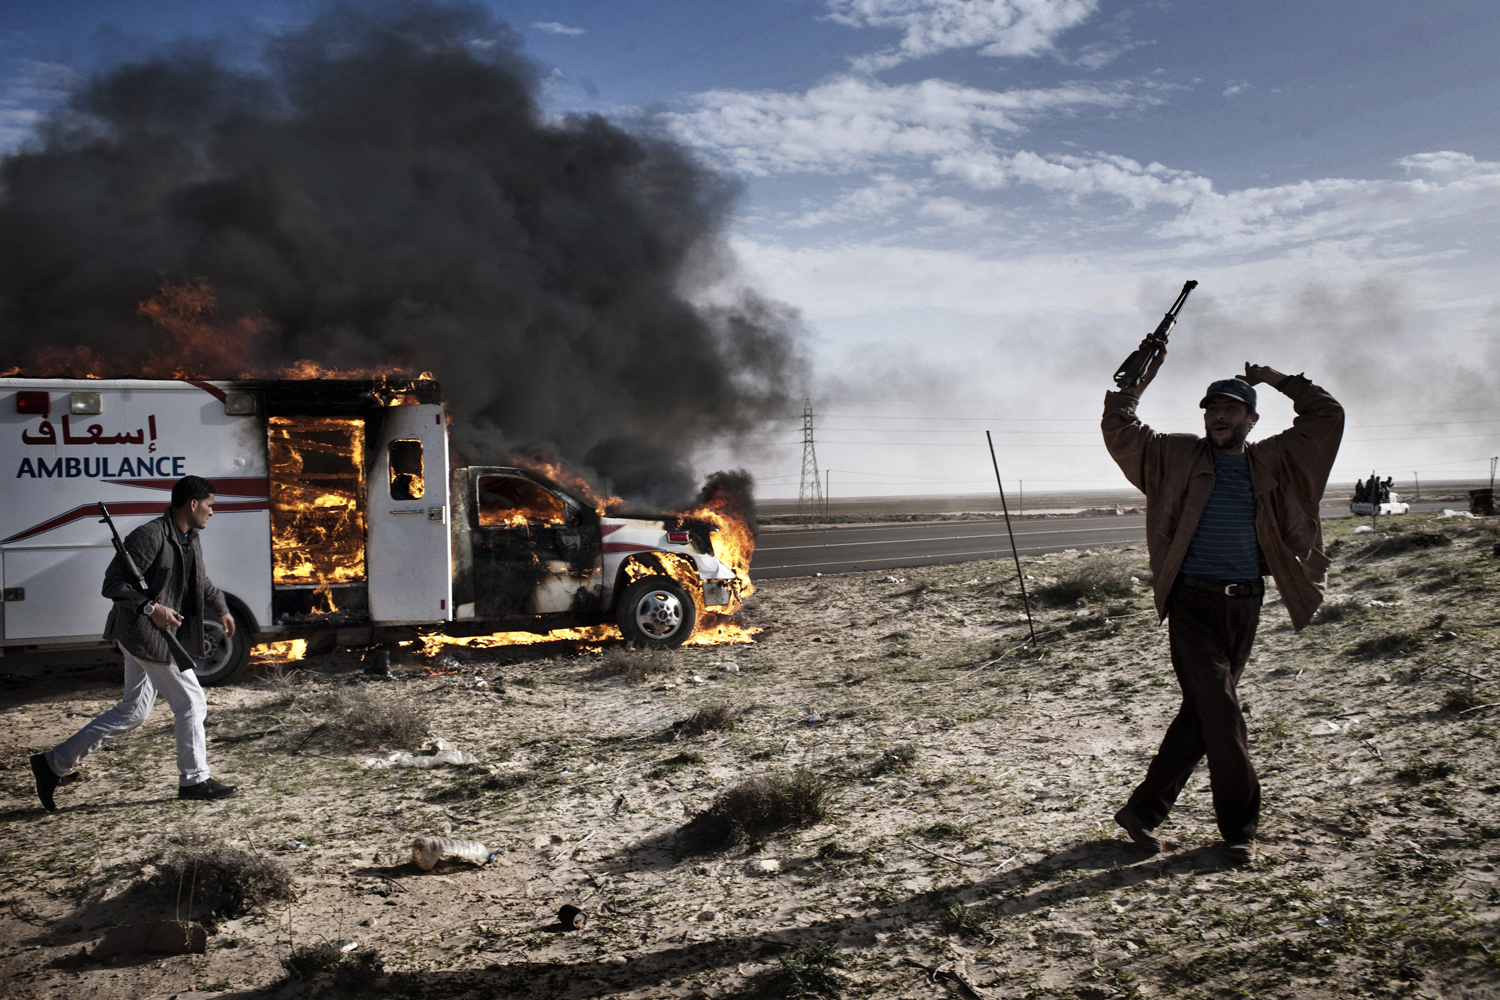 An ambulance burns after a battle between rebels and the Libyan army in Brega, March 2, 2011.